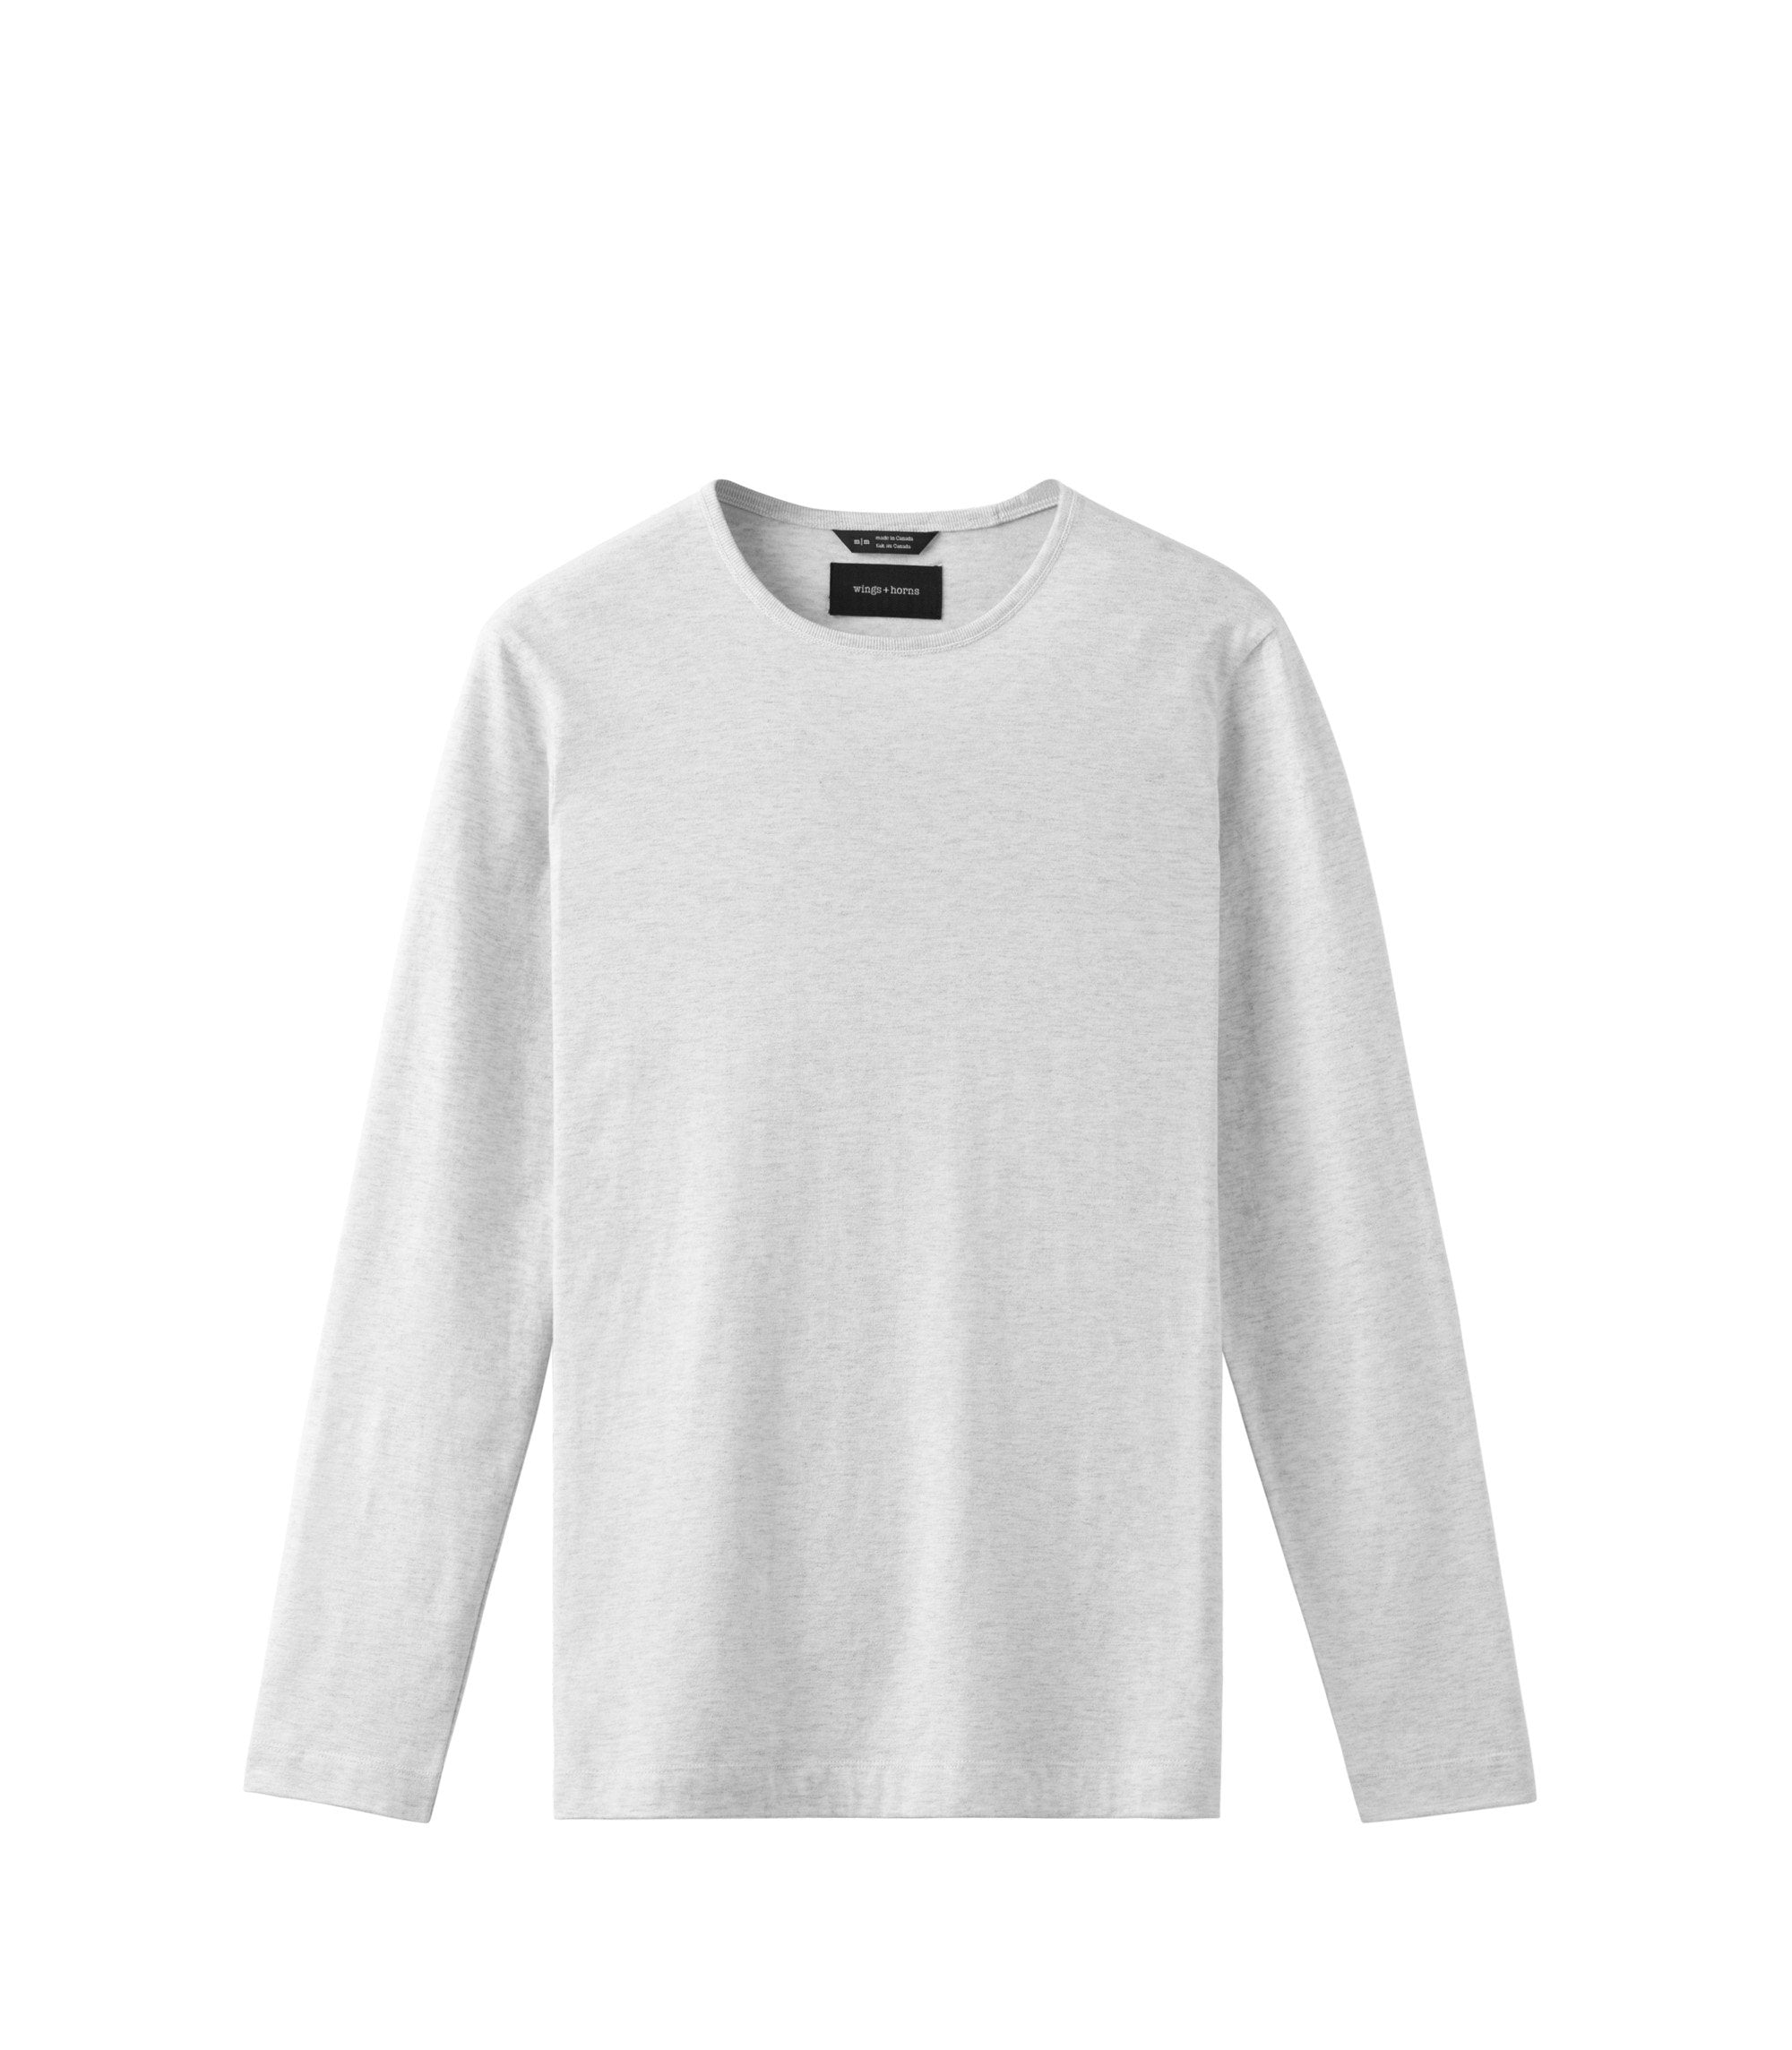 WINGS + HORNS M'S SHIRTS Wht S PIMA JERSEY LONG SLEEVE